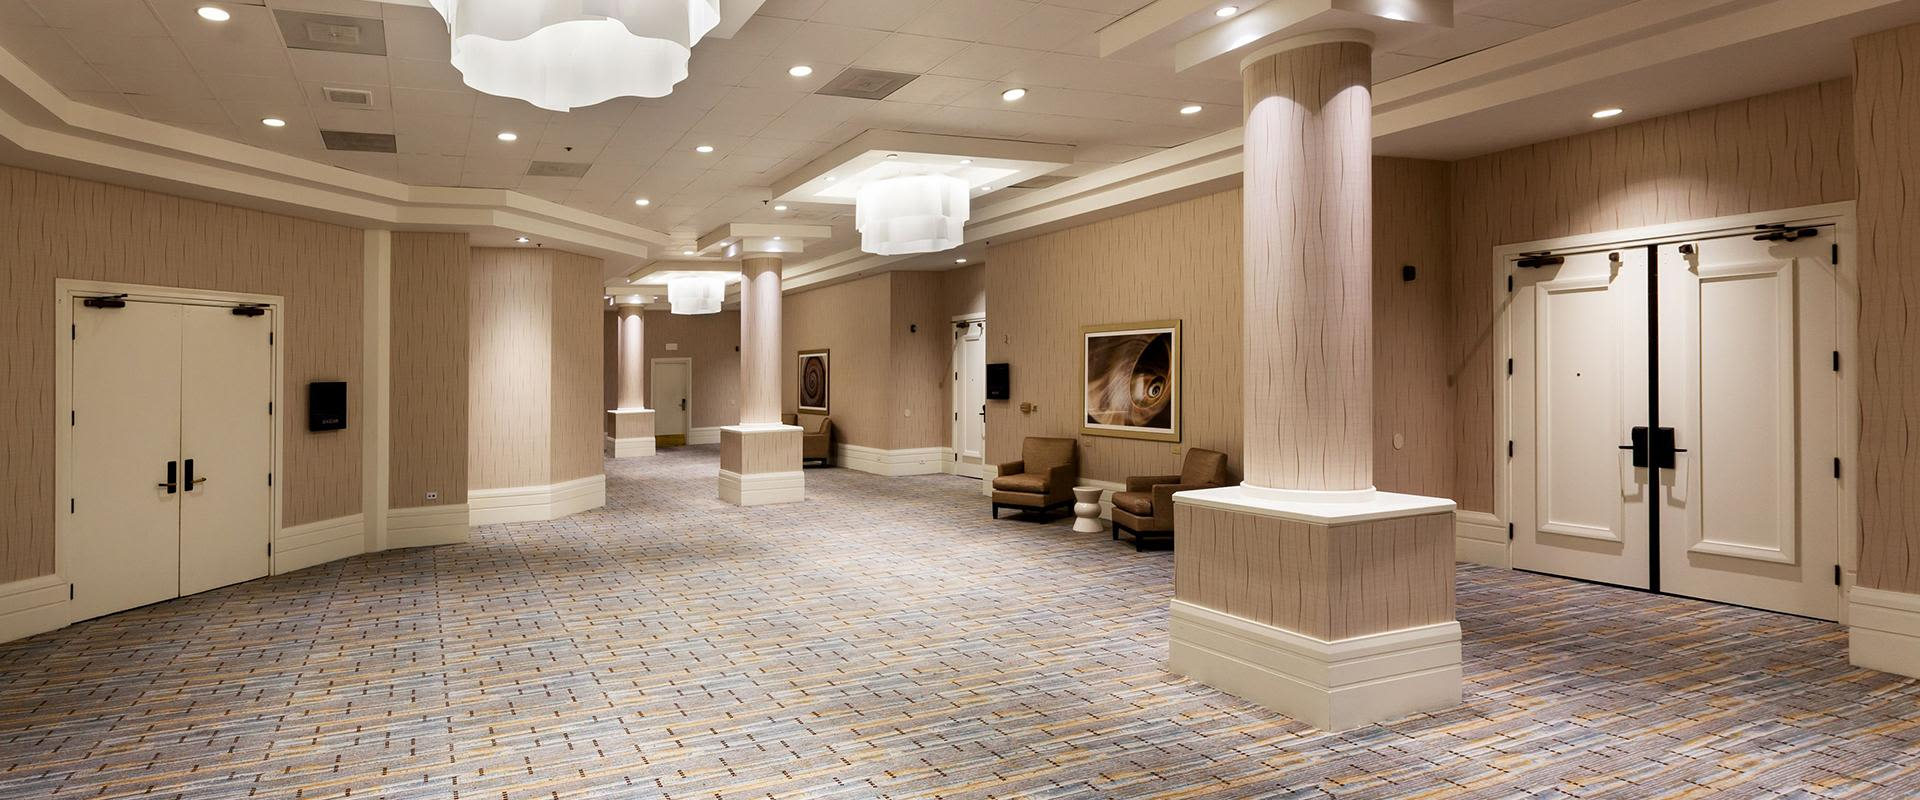 Redondo Beach Foyer By Event Space